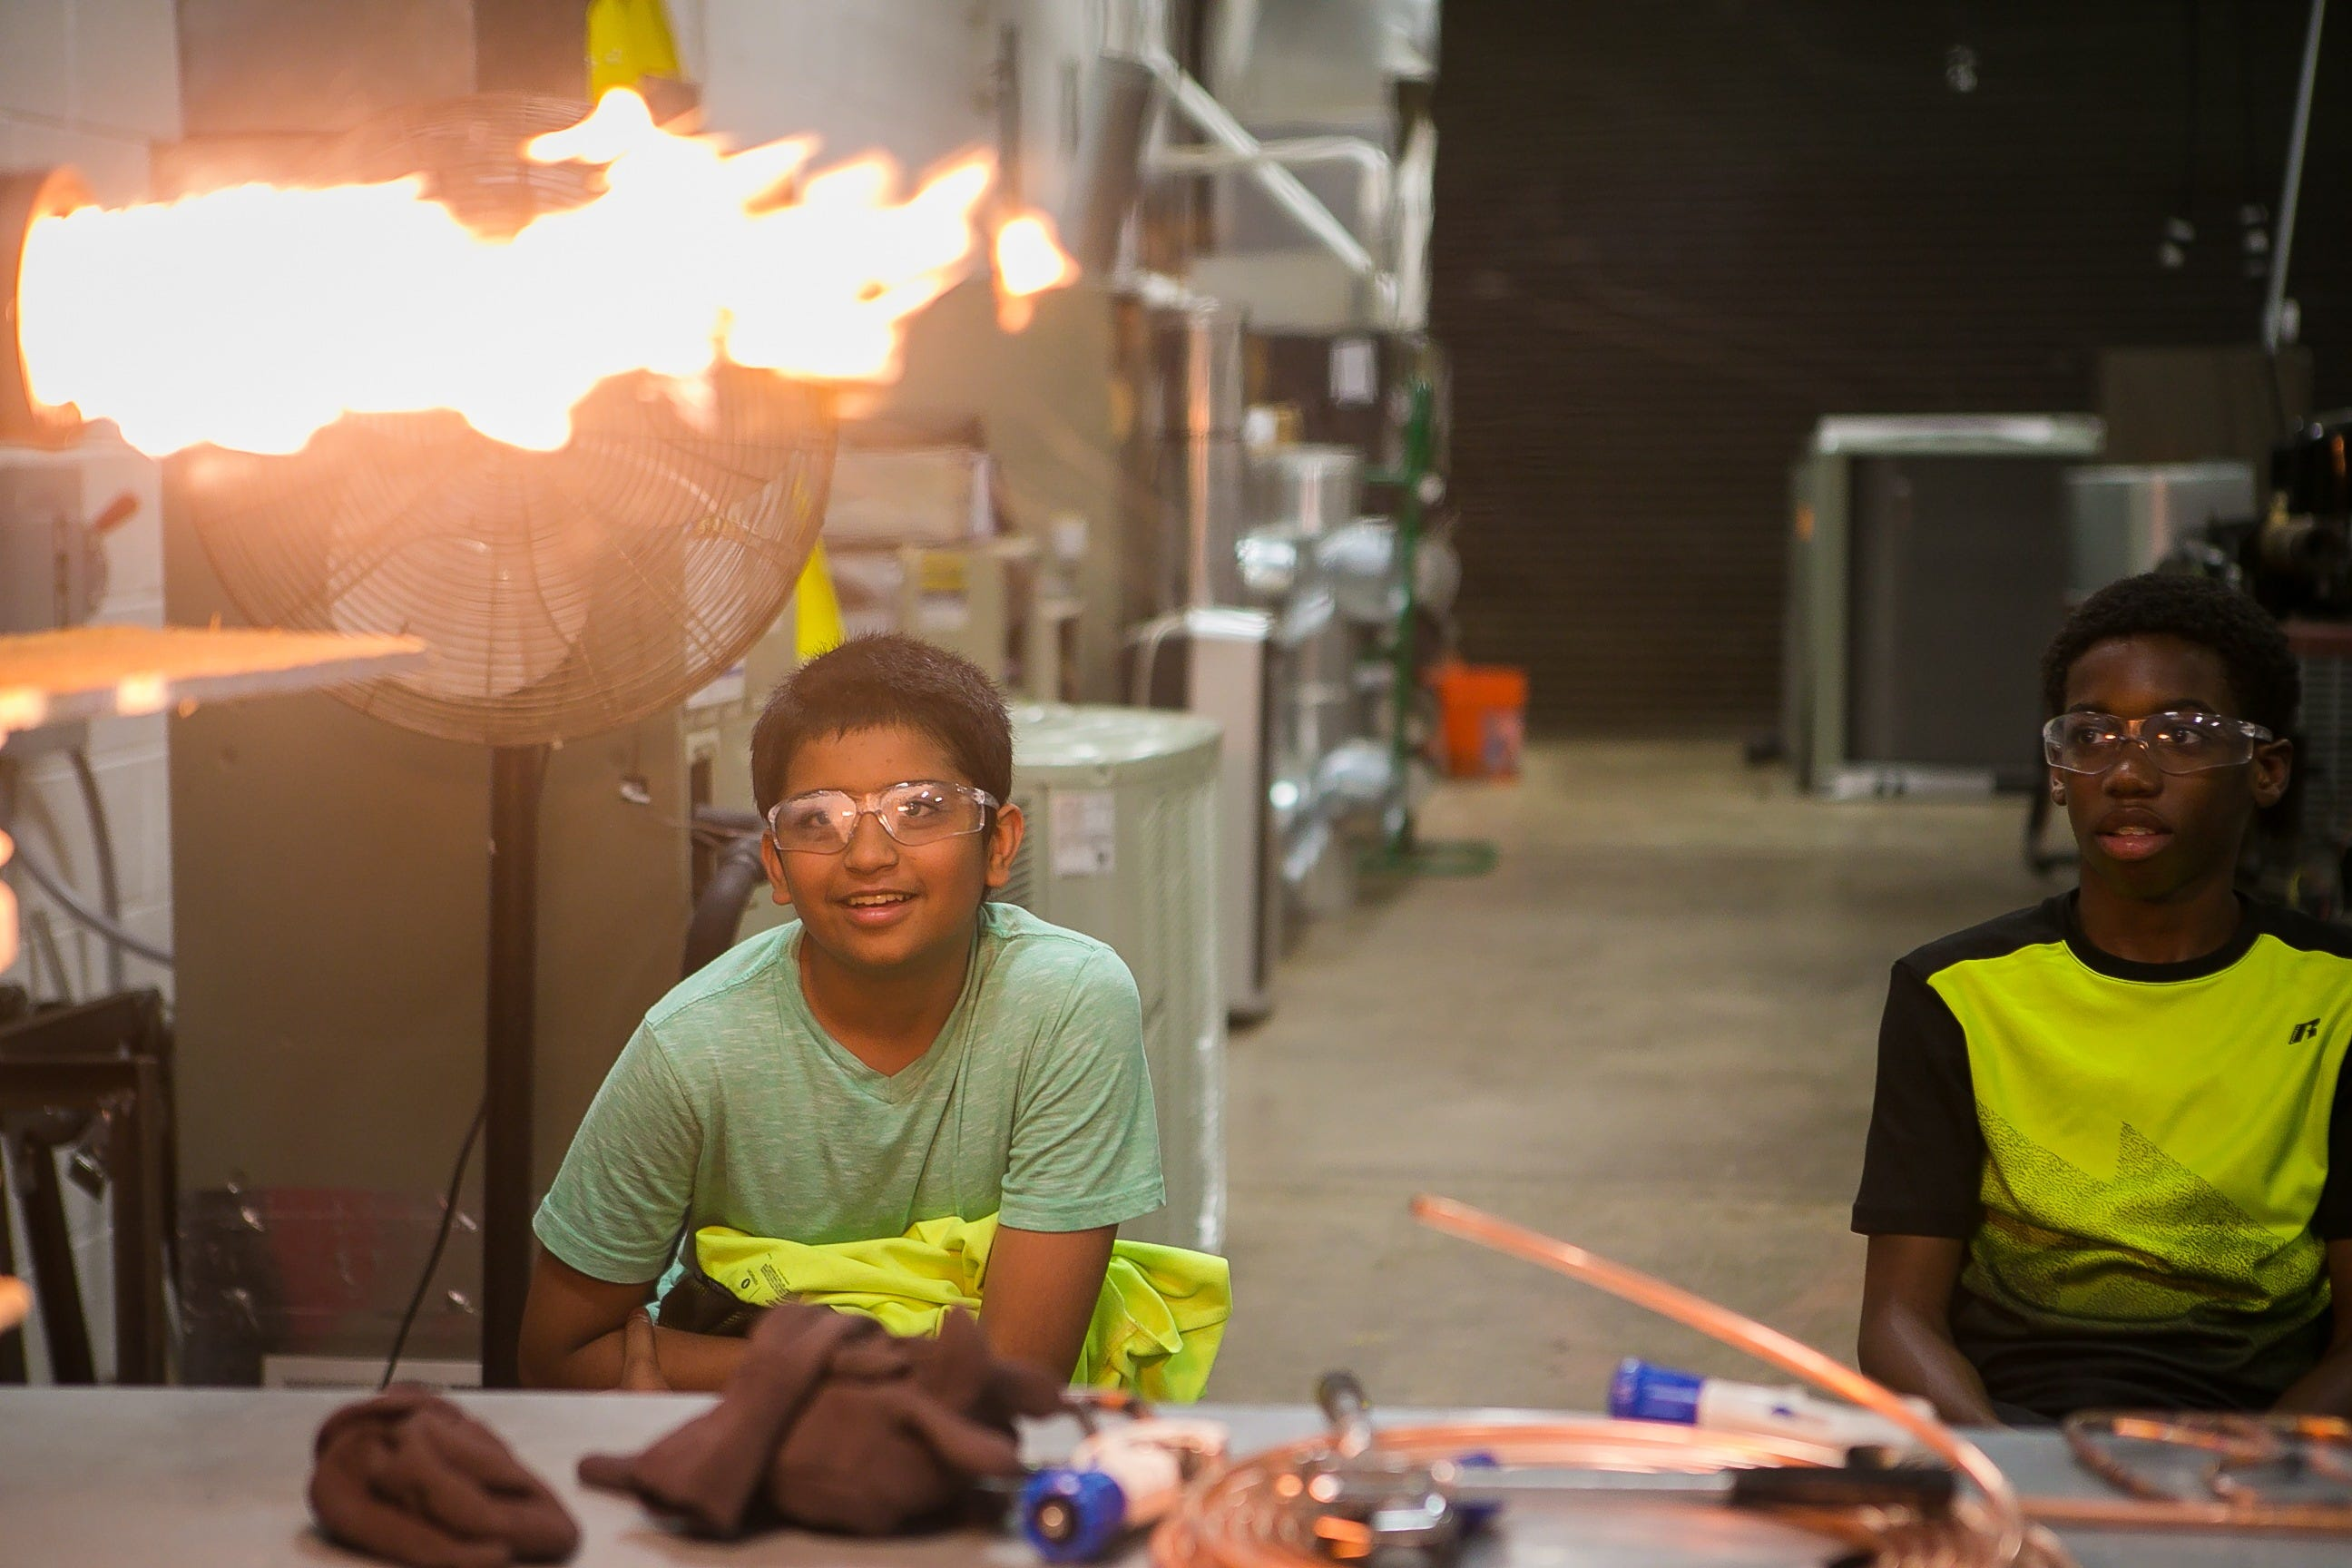 New Castle County Vo-Tech summer camp introduces middle schoolers to construction work | Delaware Online